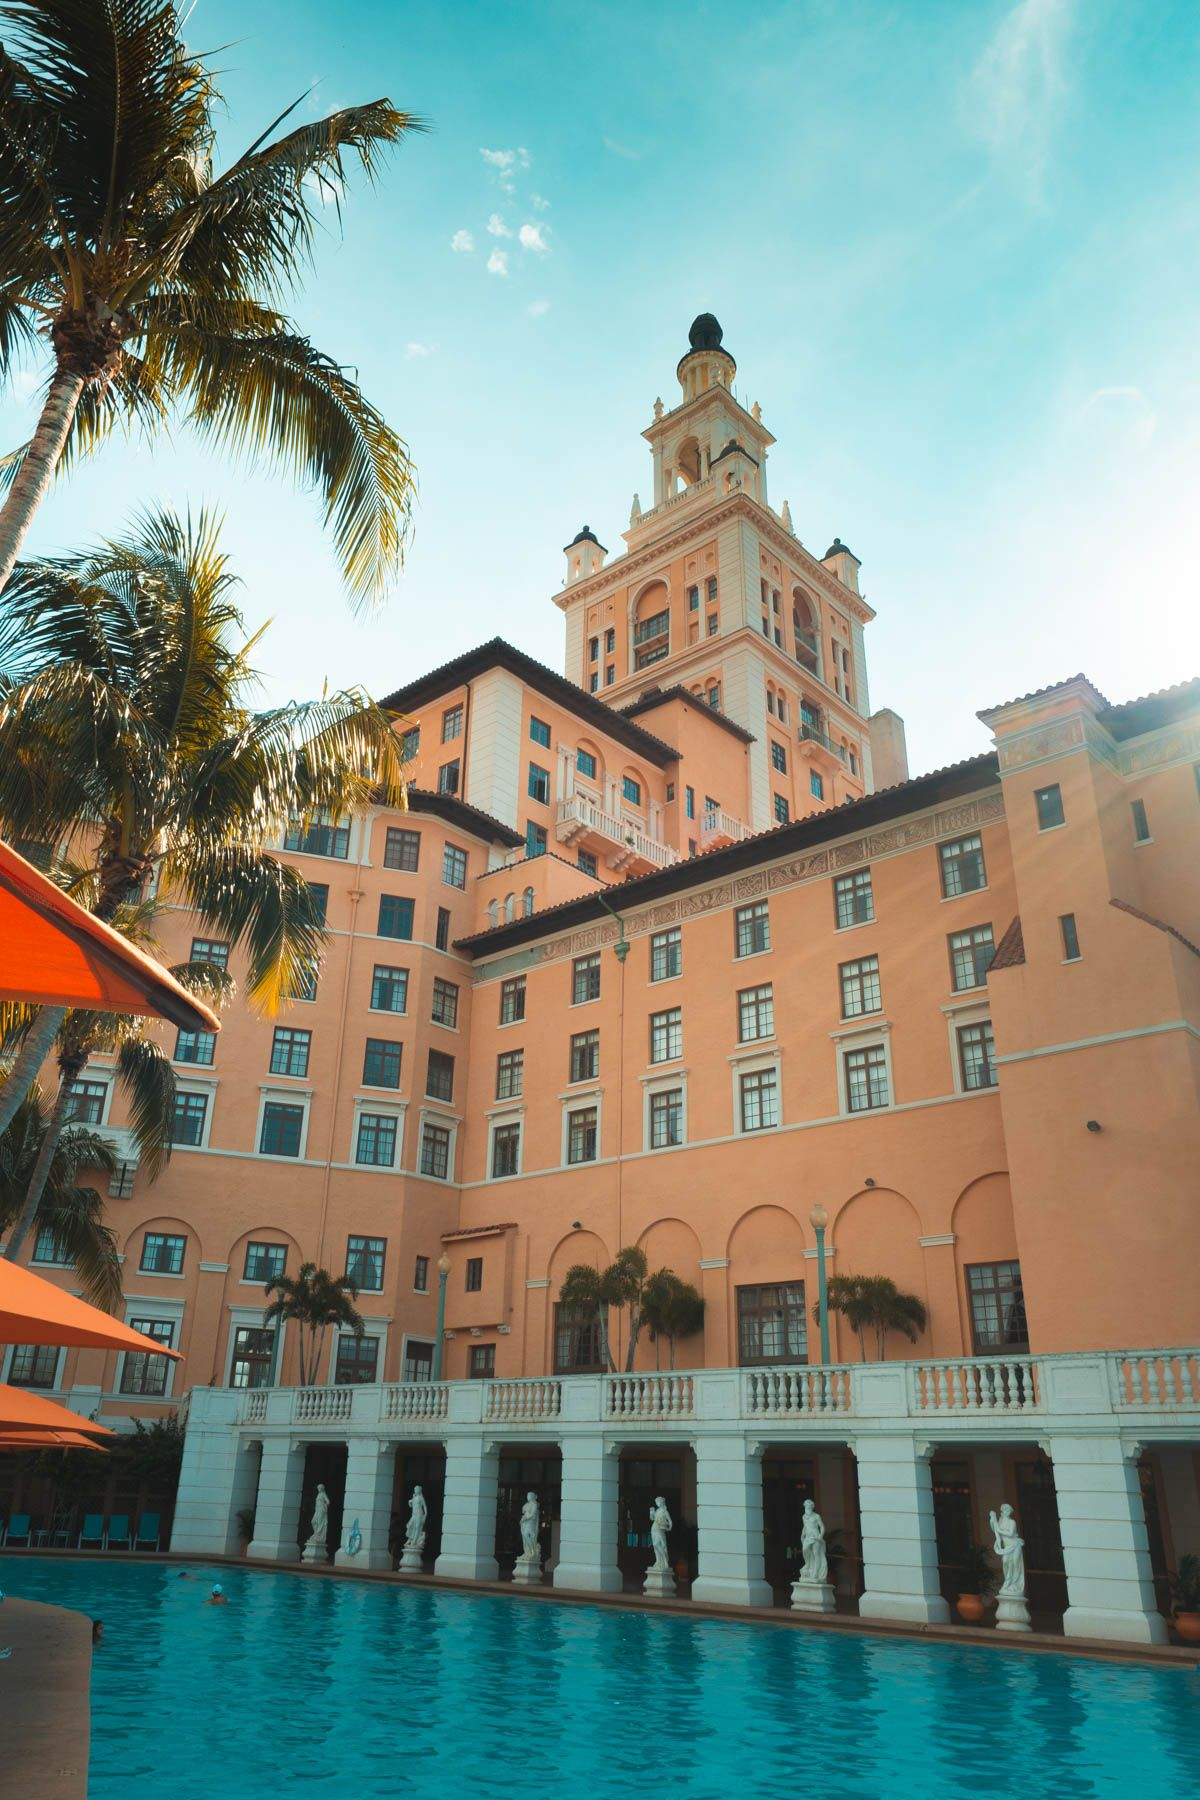 The Biltmore Hotel Das Must See In Miami Coral Gables In 2020 Florida Hotels Coral Gables Florida Coral Gables